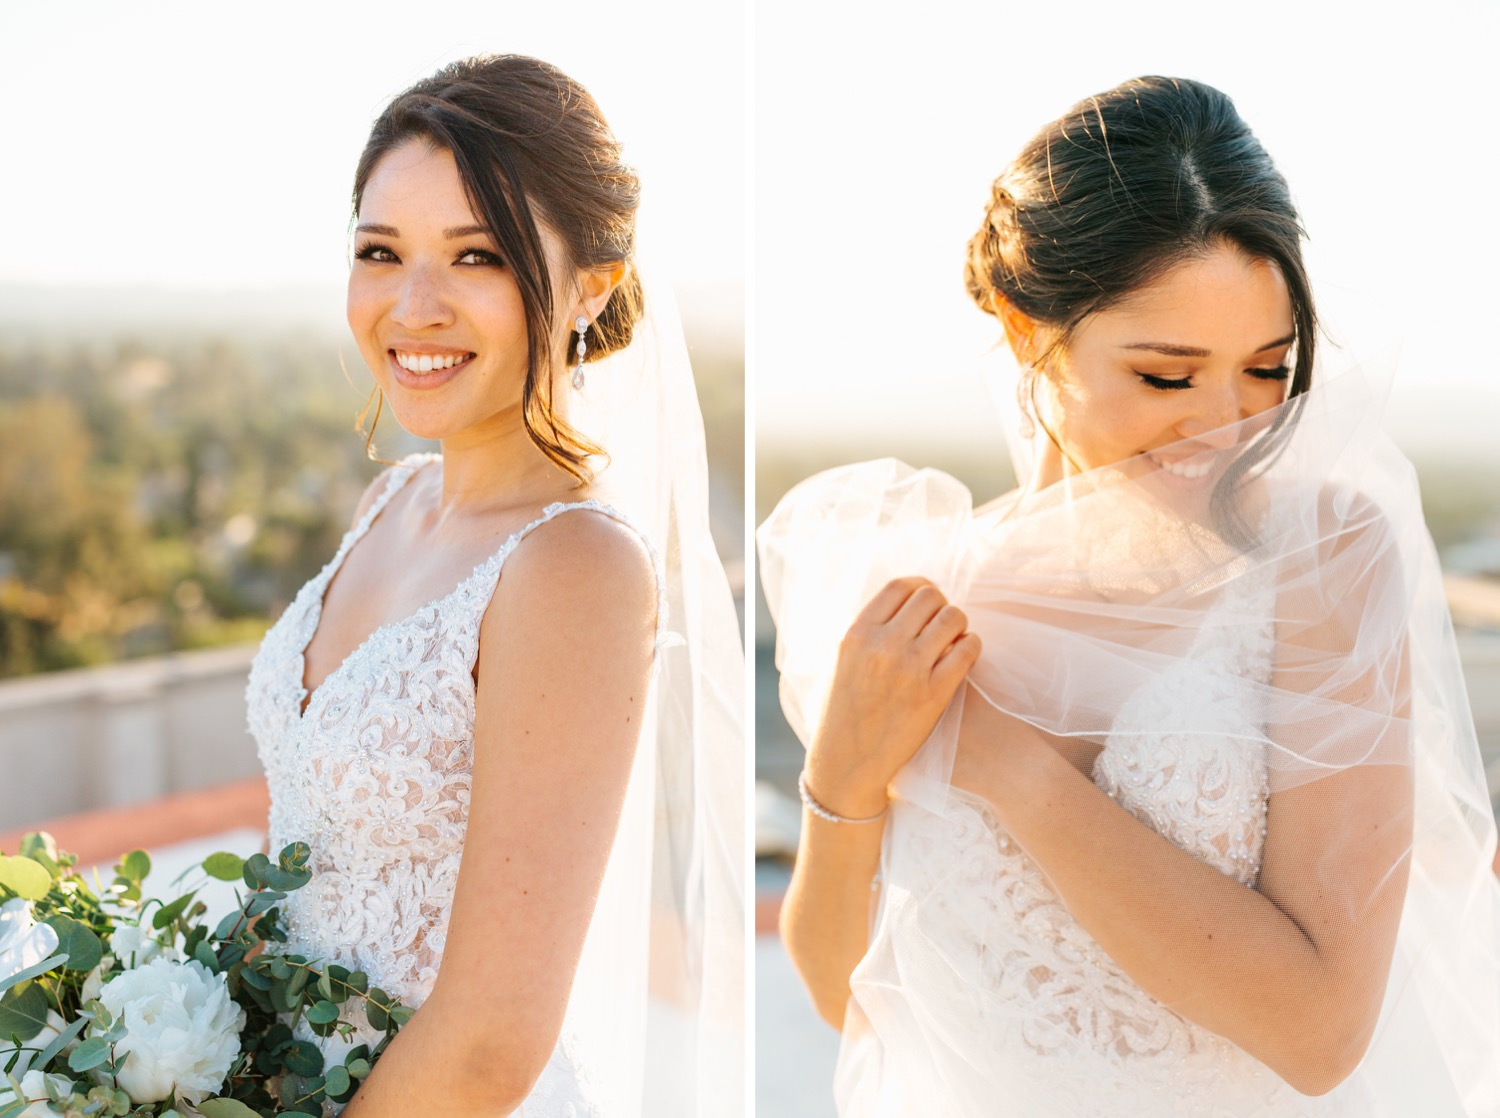 Blushing Bride - Los Angeles Wedding - https://brittneyhannonphotography.com